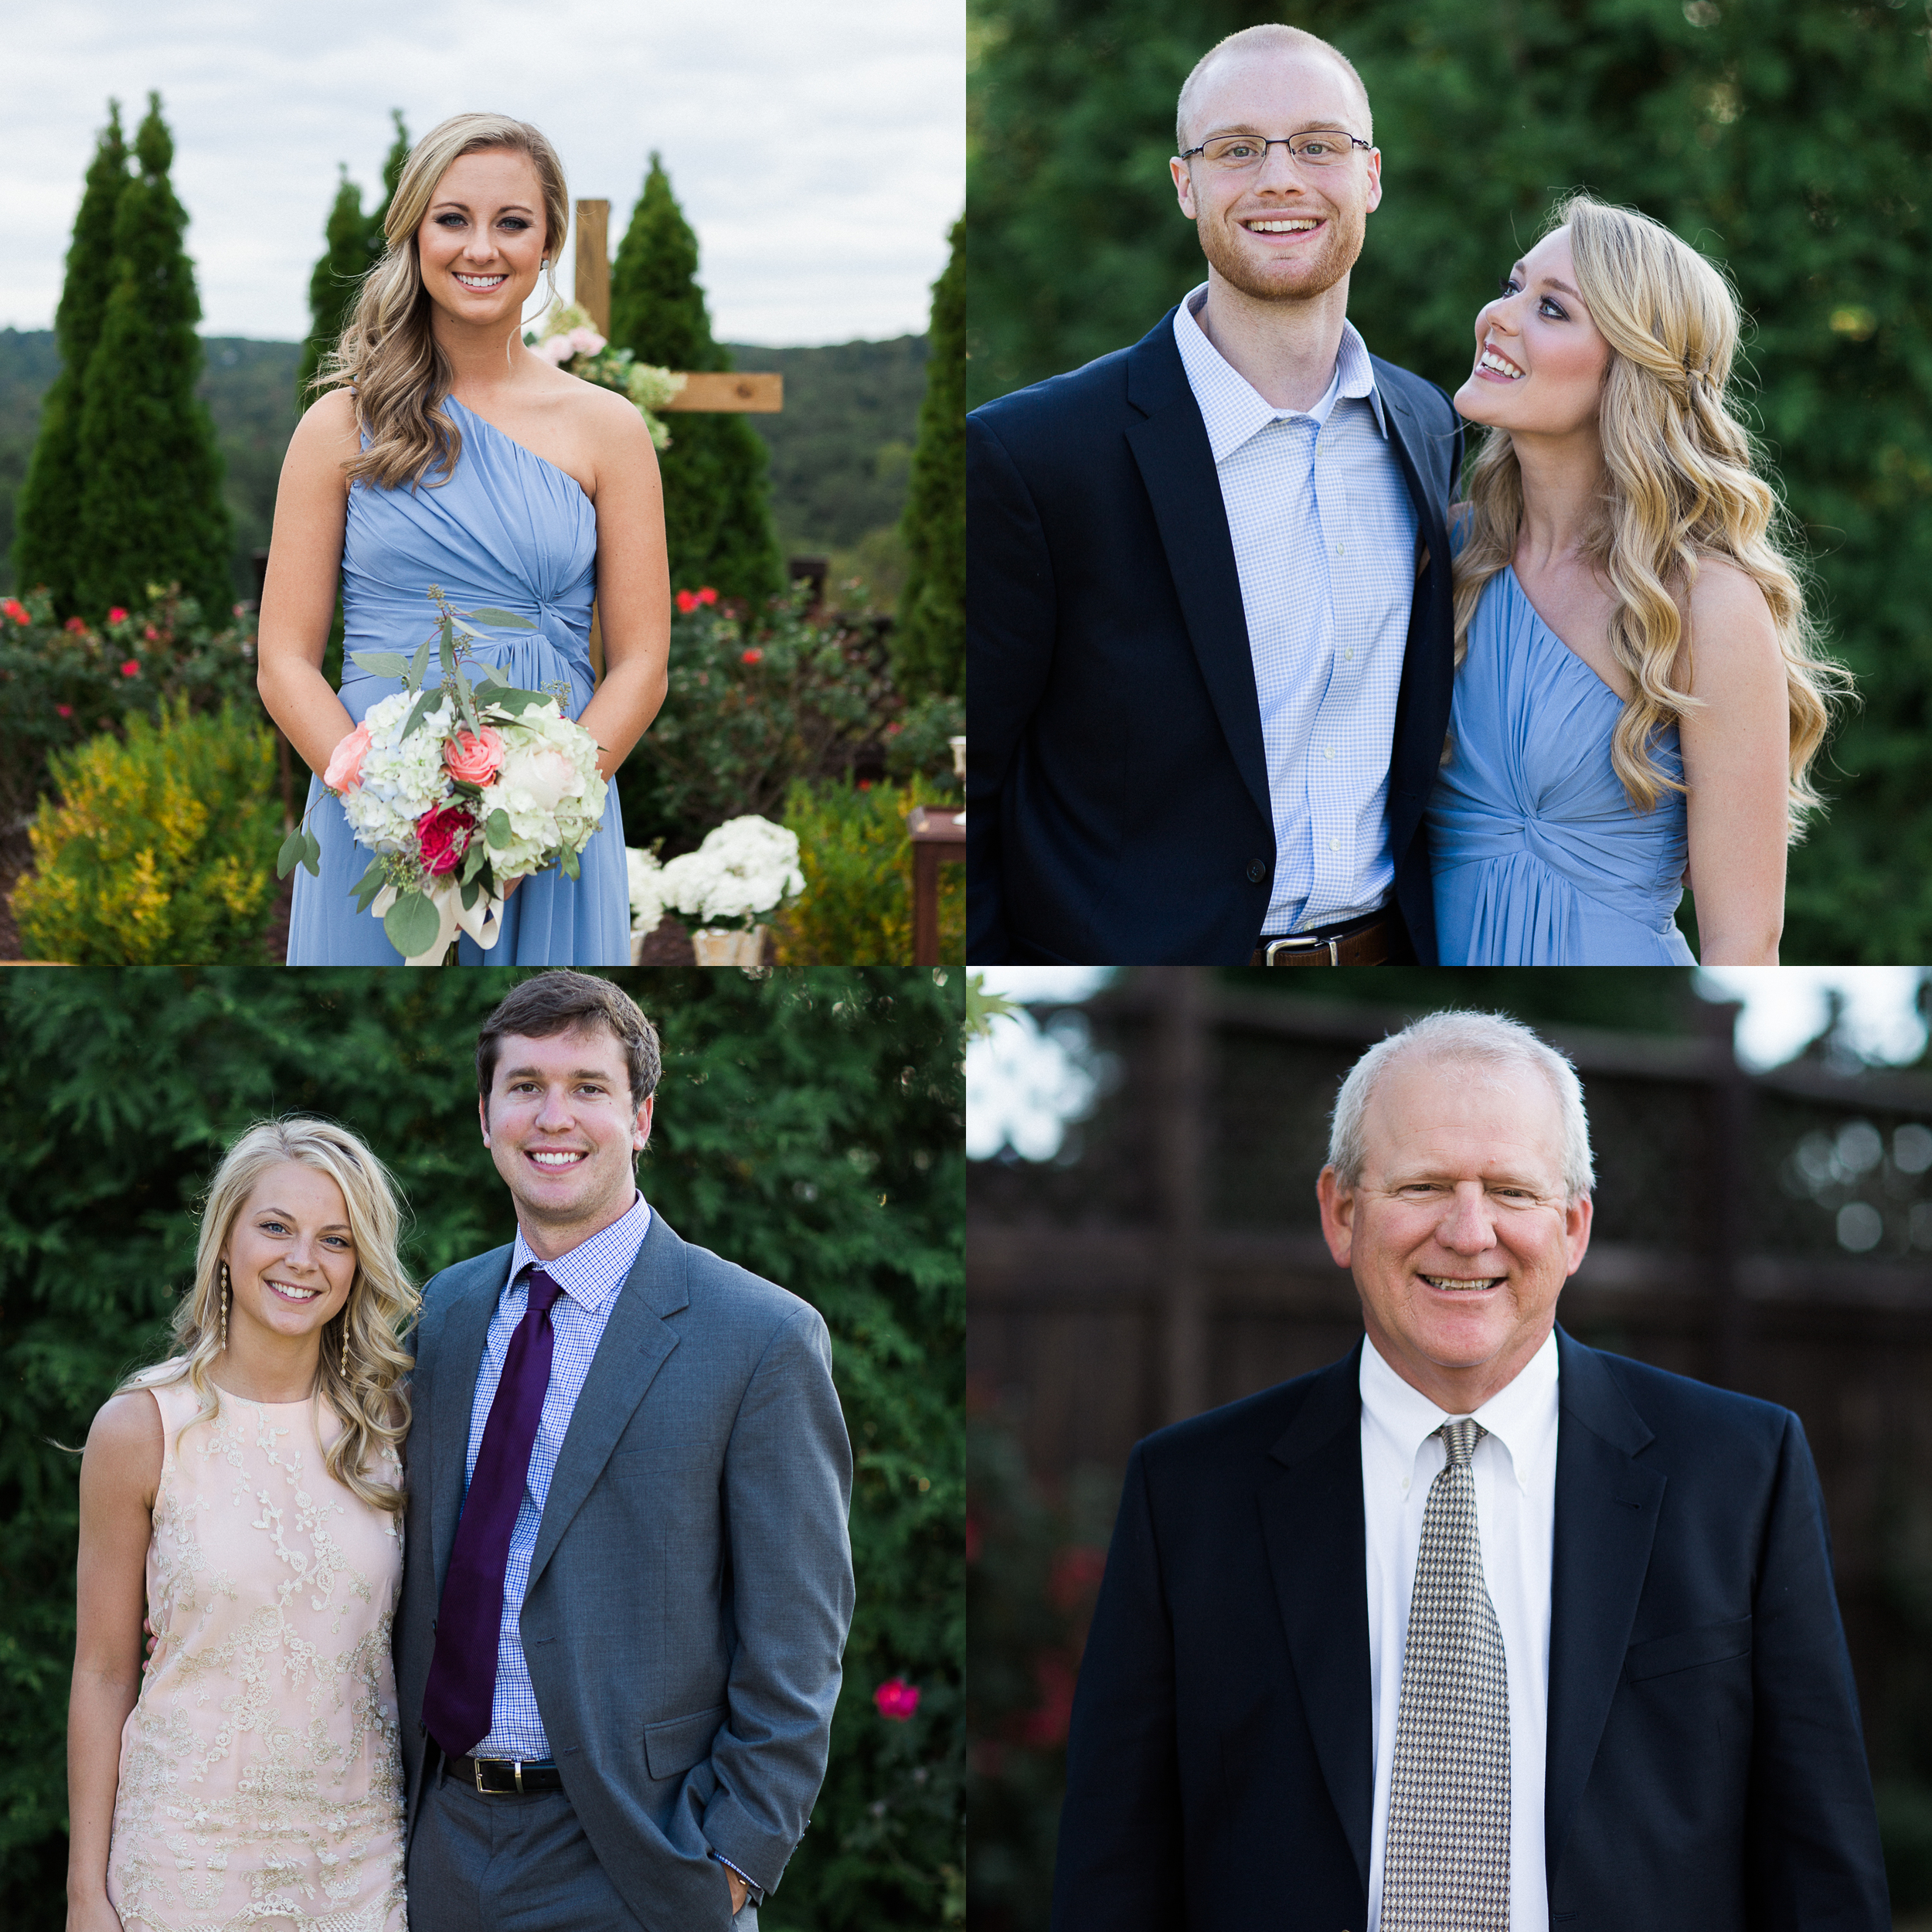 Stephen & Kendall Wedding_Blog10.jpg